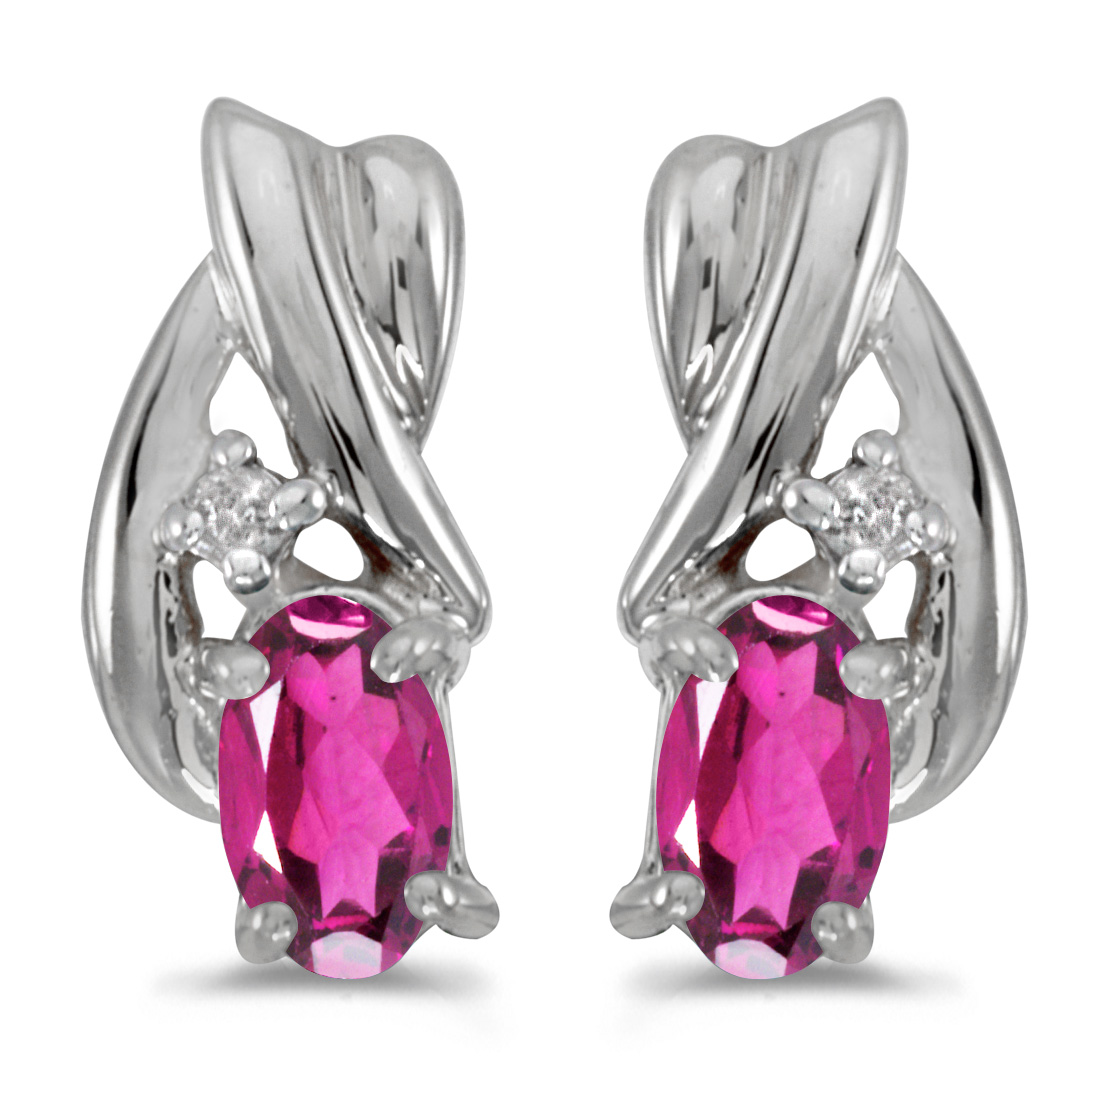 10k White Gold Oval Pink Topaz And Diamond Earrings by